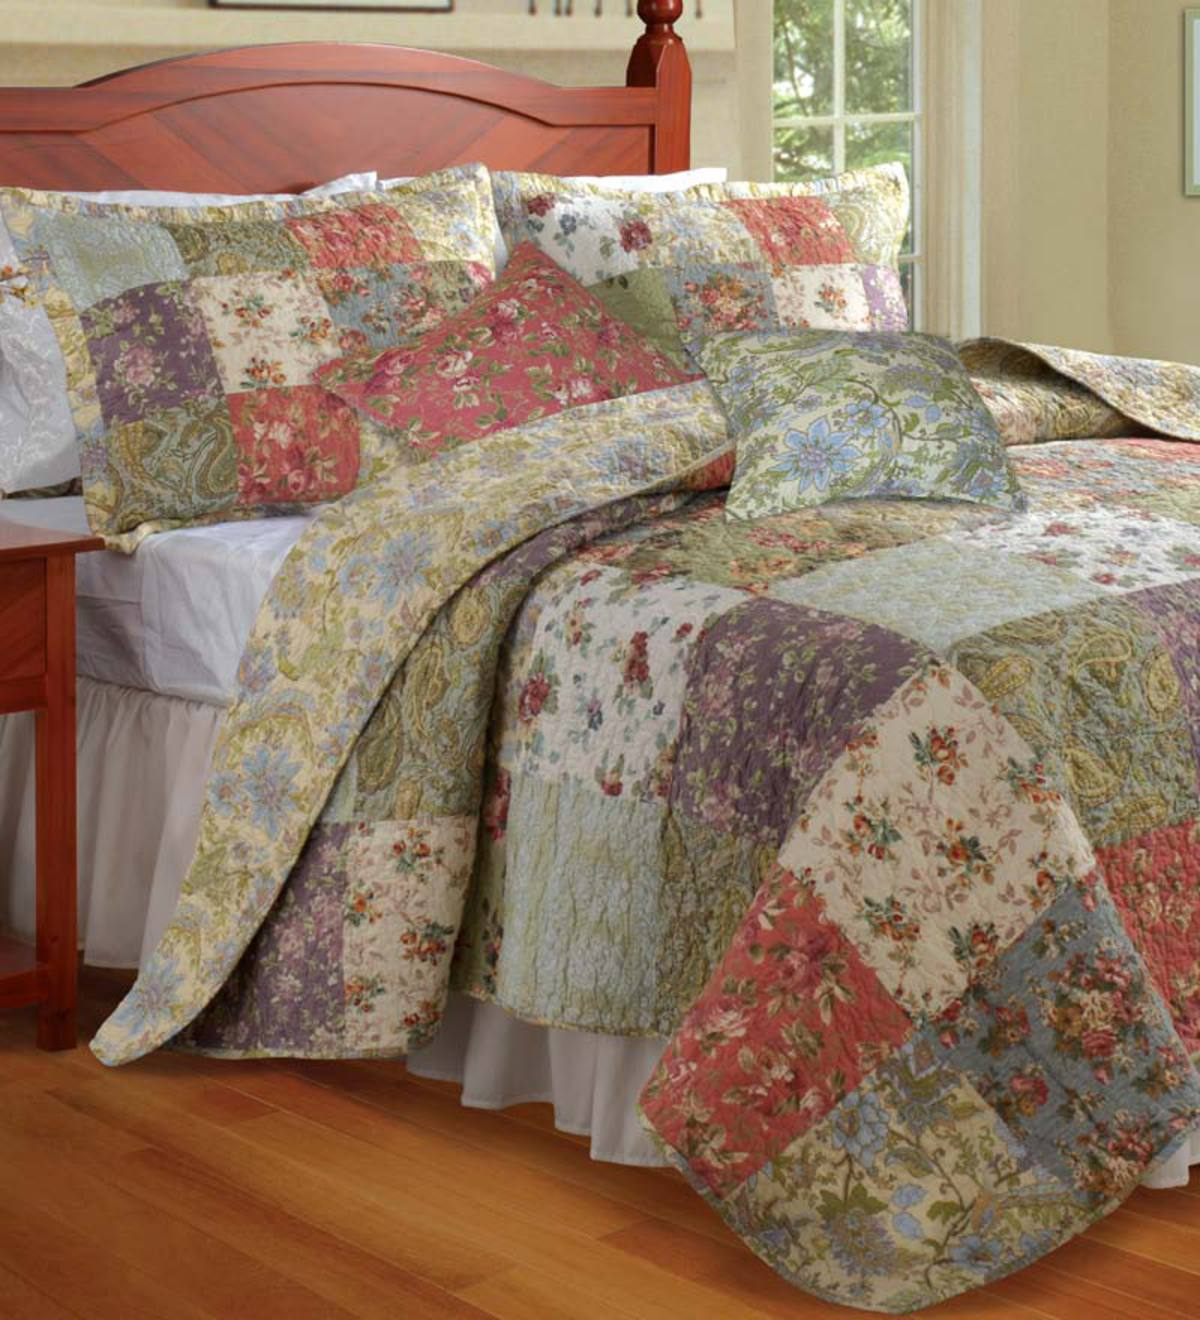 Full/Queen 100% Cotton Wildflower Patchwork Block Quilt Bonus Set